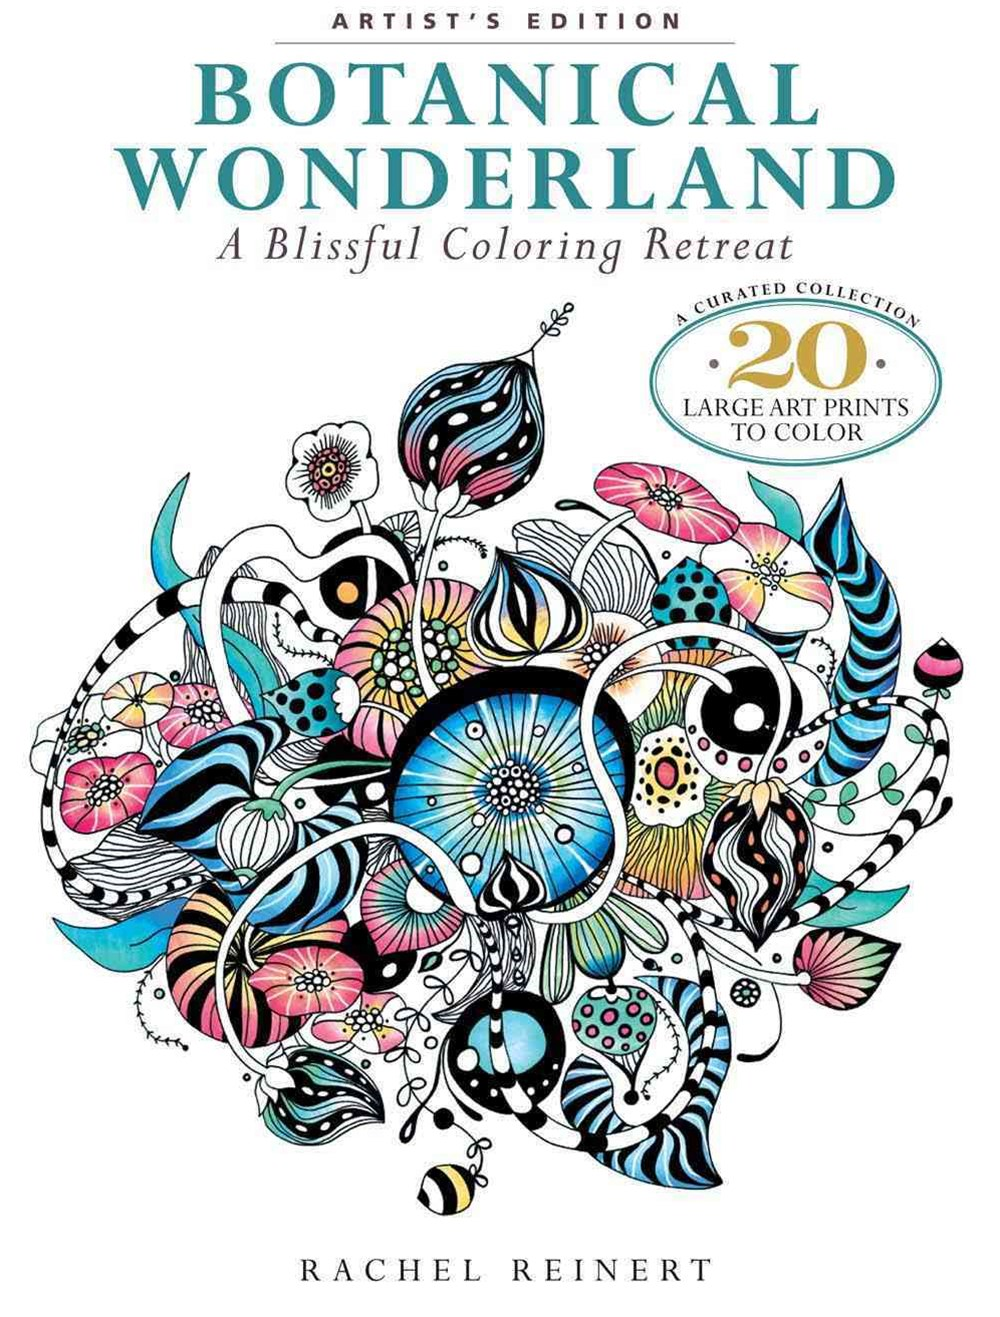 Botanical Wonderland: Artist's Edition